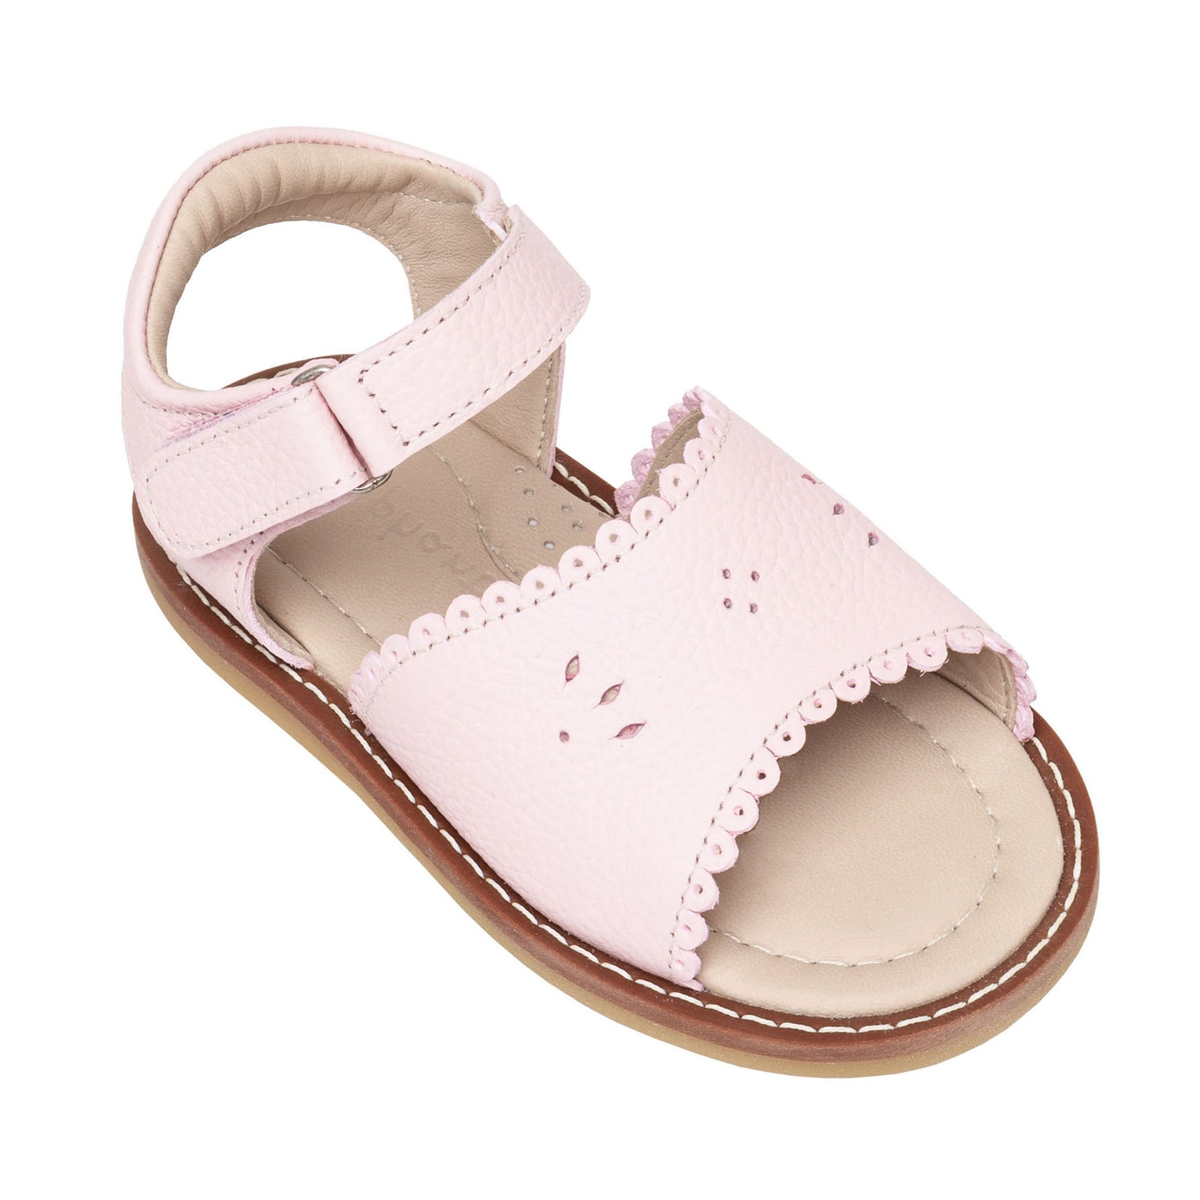 Children's Classic Scallop Leather Sandal